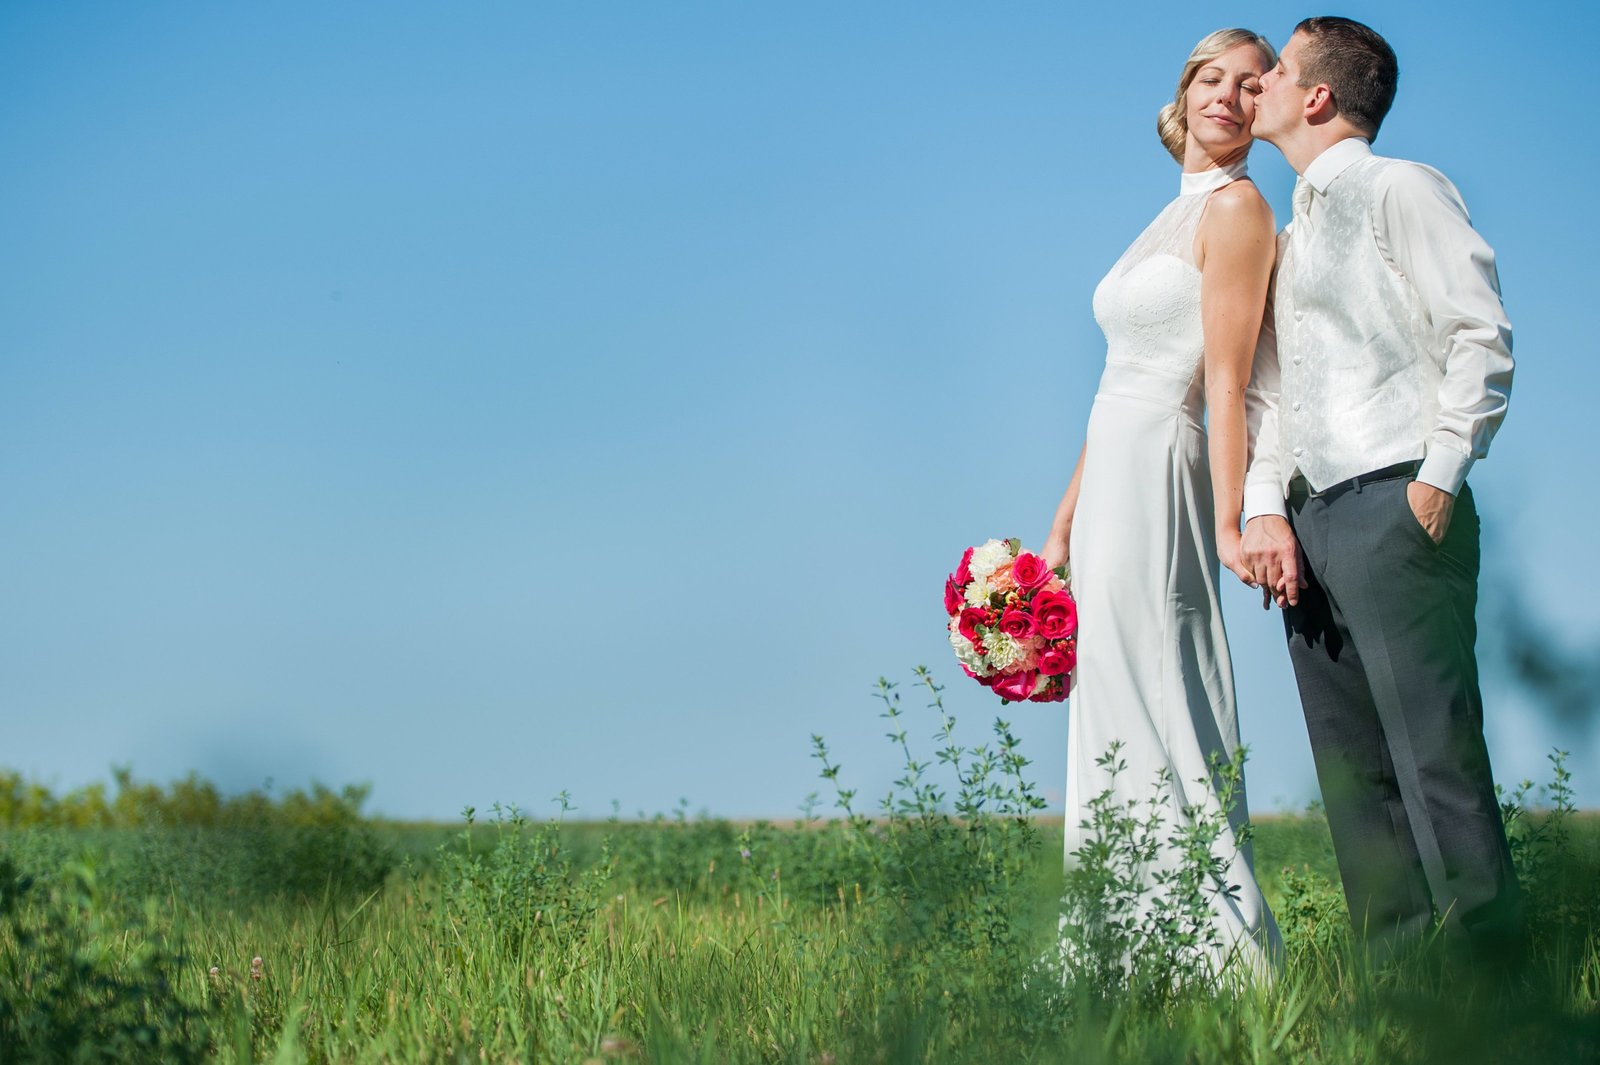 Kris kandel photographs wedding on the north dakota prairies. Big sky country photographer!